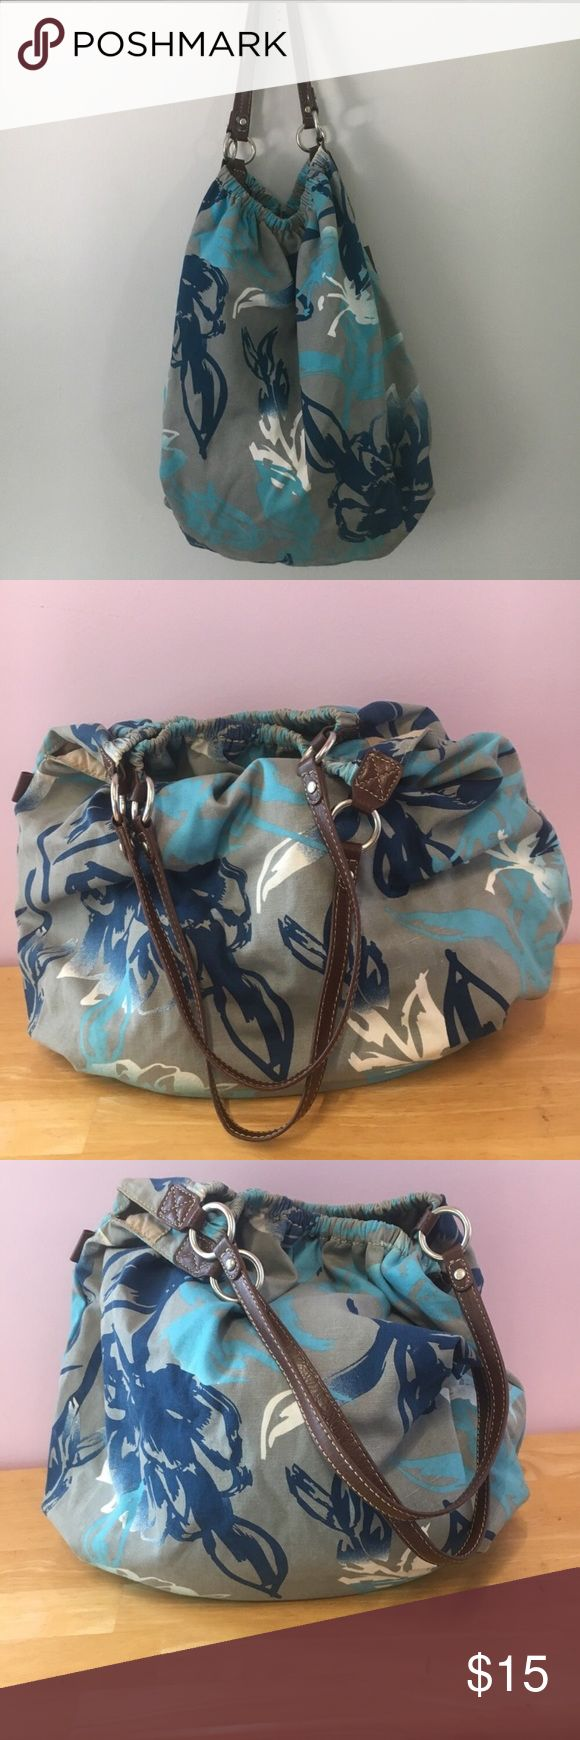 American Eagle Tote Grey and blue American Eagle tote bag. Great school bag. Inside is overall clean with a few pen marks. Make an offer, all reasonable offers will be considered! American Eagle Outfitters Bags Totes